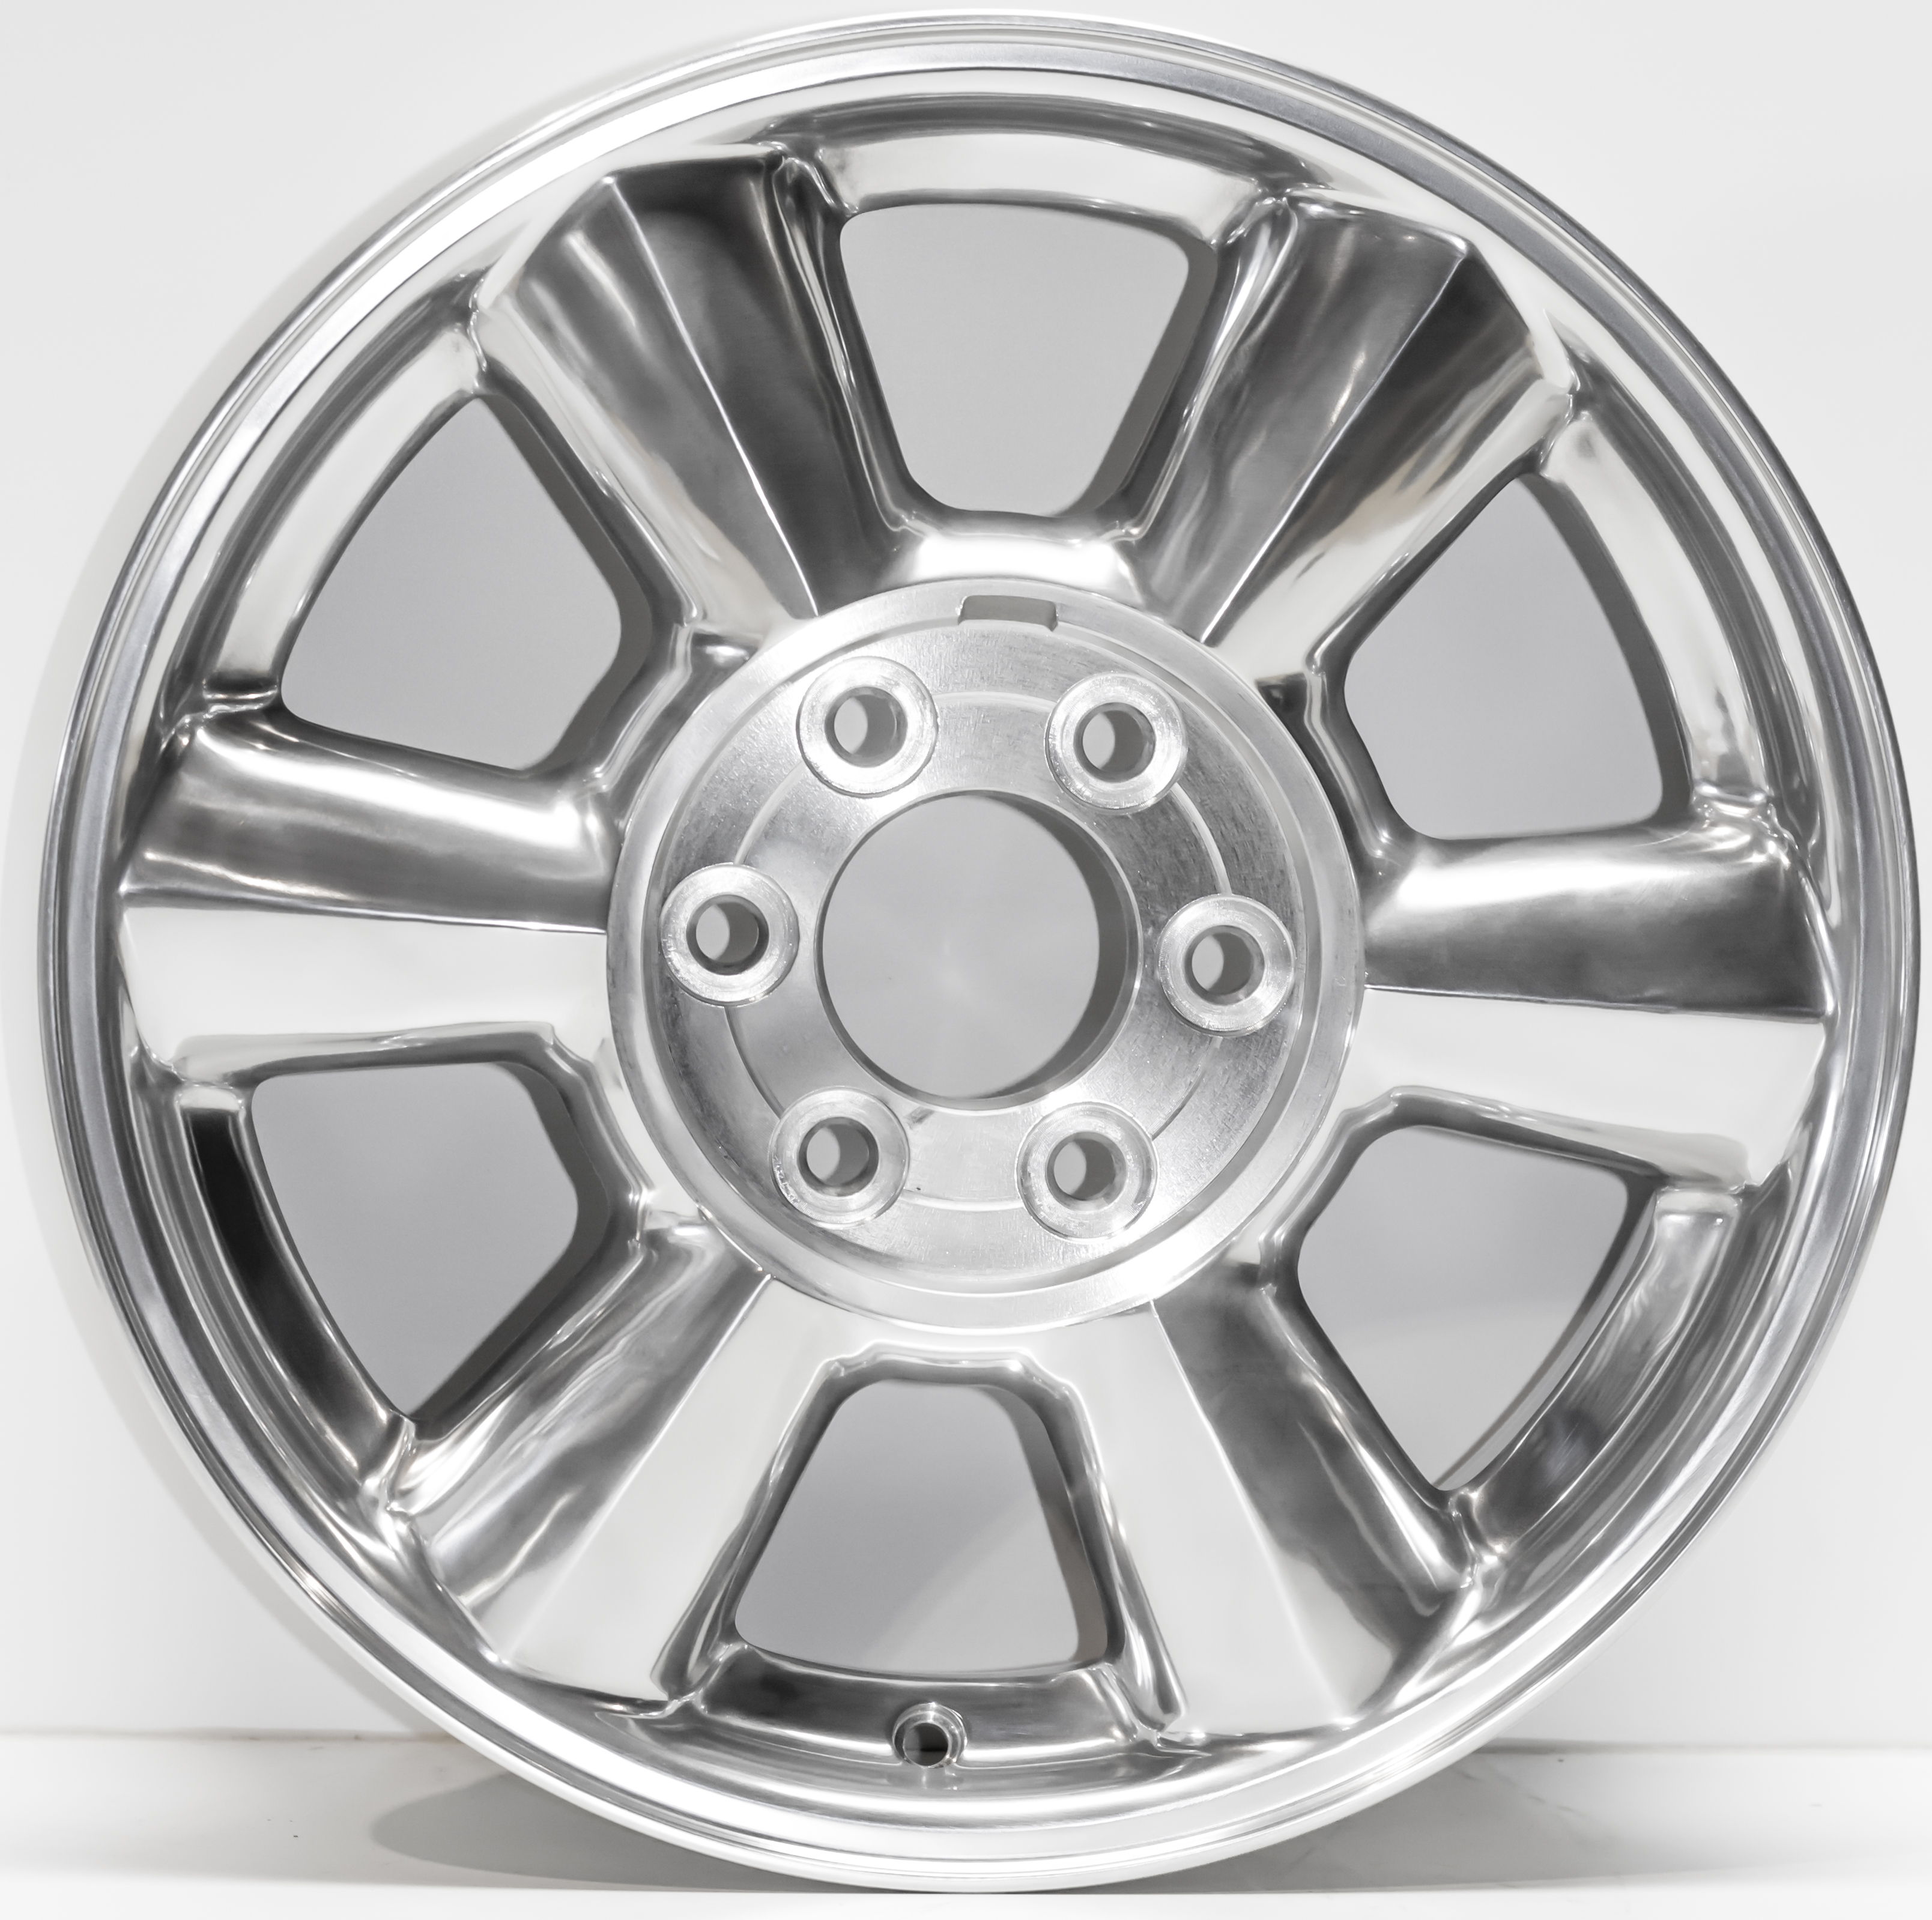 GMC Envoy 02-07 17 Inch Polished Aluminum Wheel 5143AFT